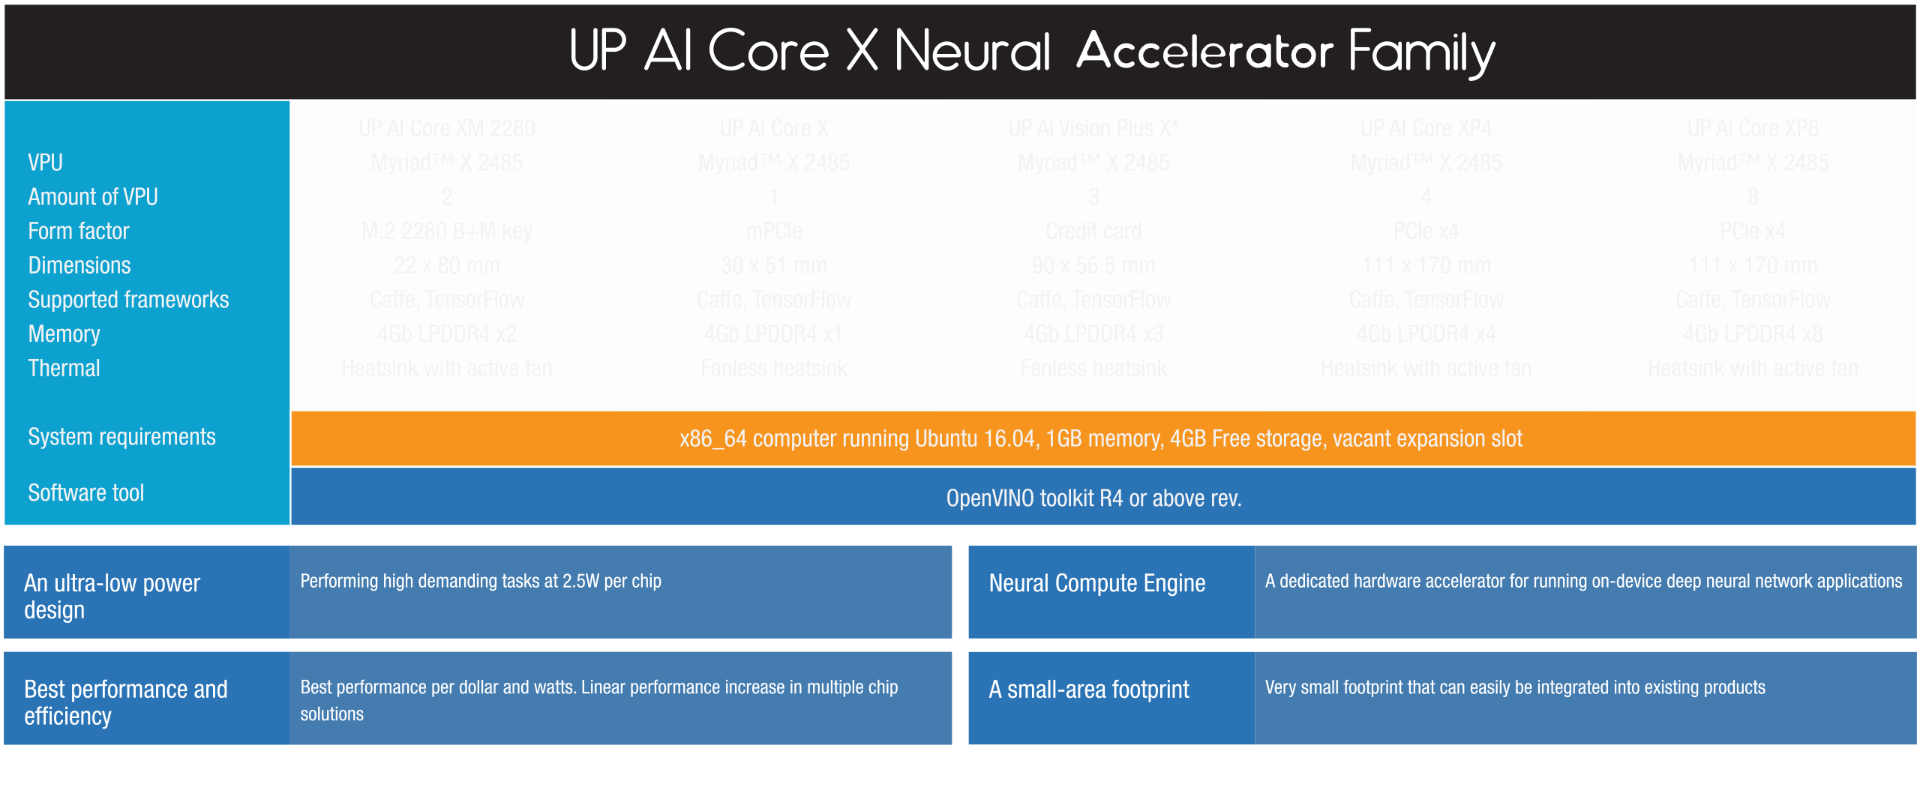 UP AI Core X Neural Accelerator Family Specs